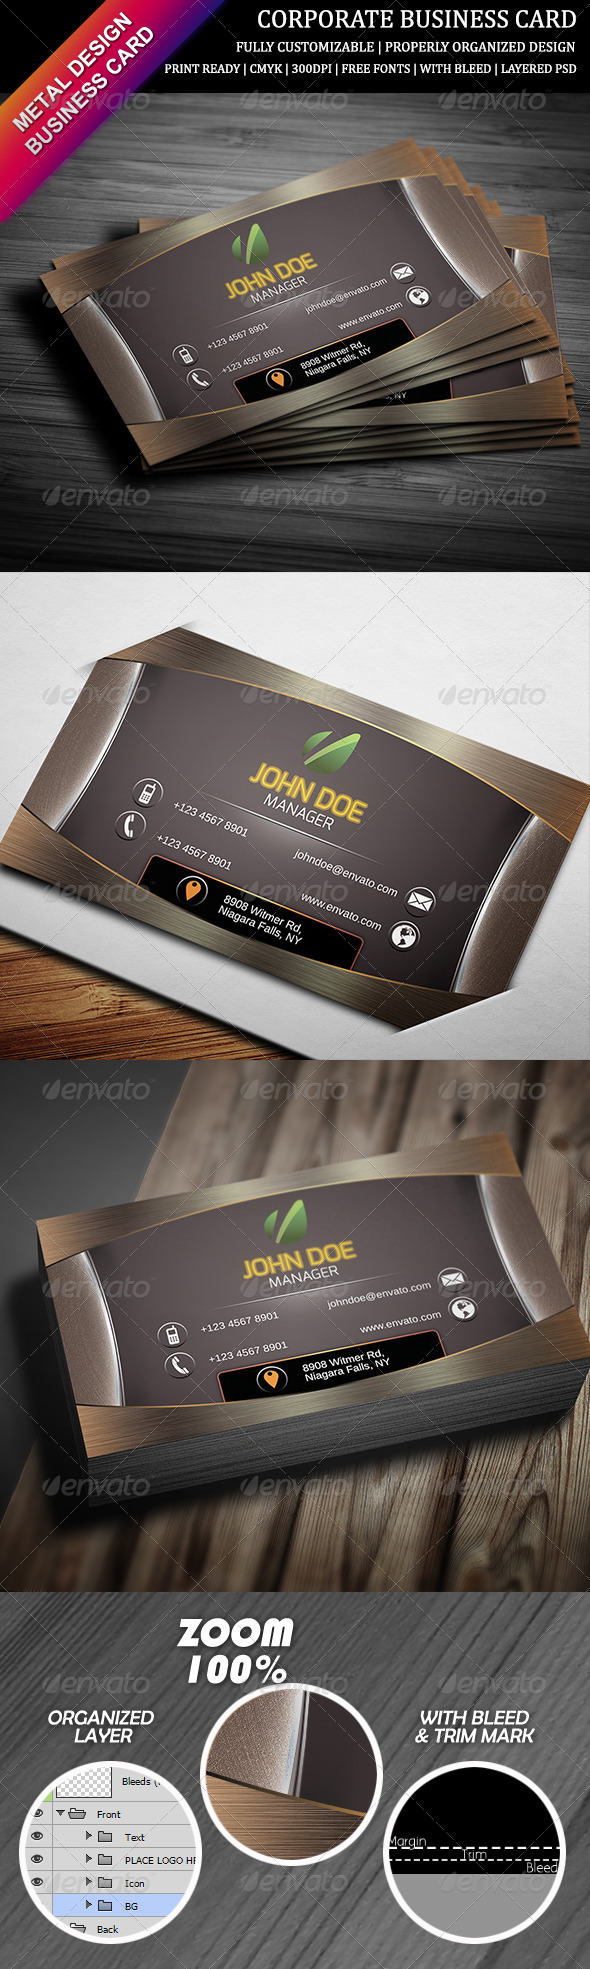 GraphicRiver Corporate Business Card 10 6495229